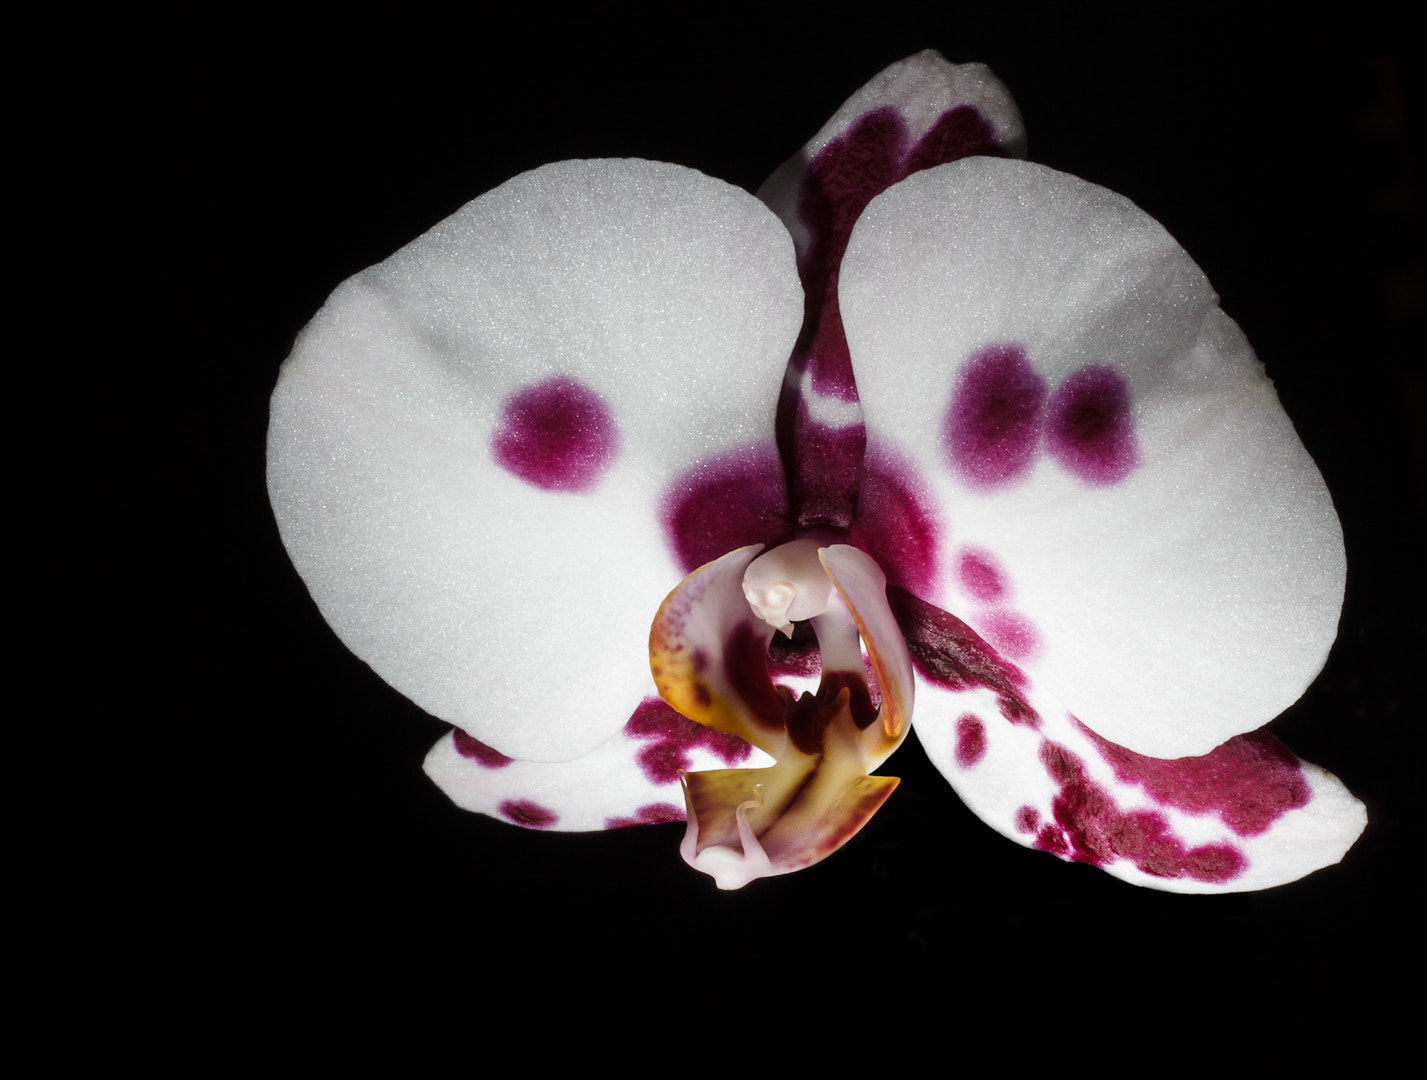 Photograph Phalaenopsis by dana m on 500px